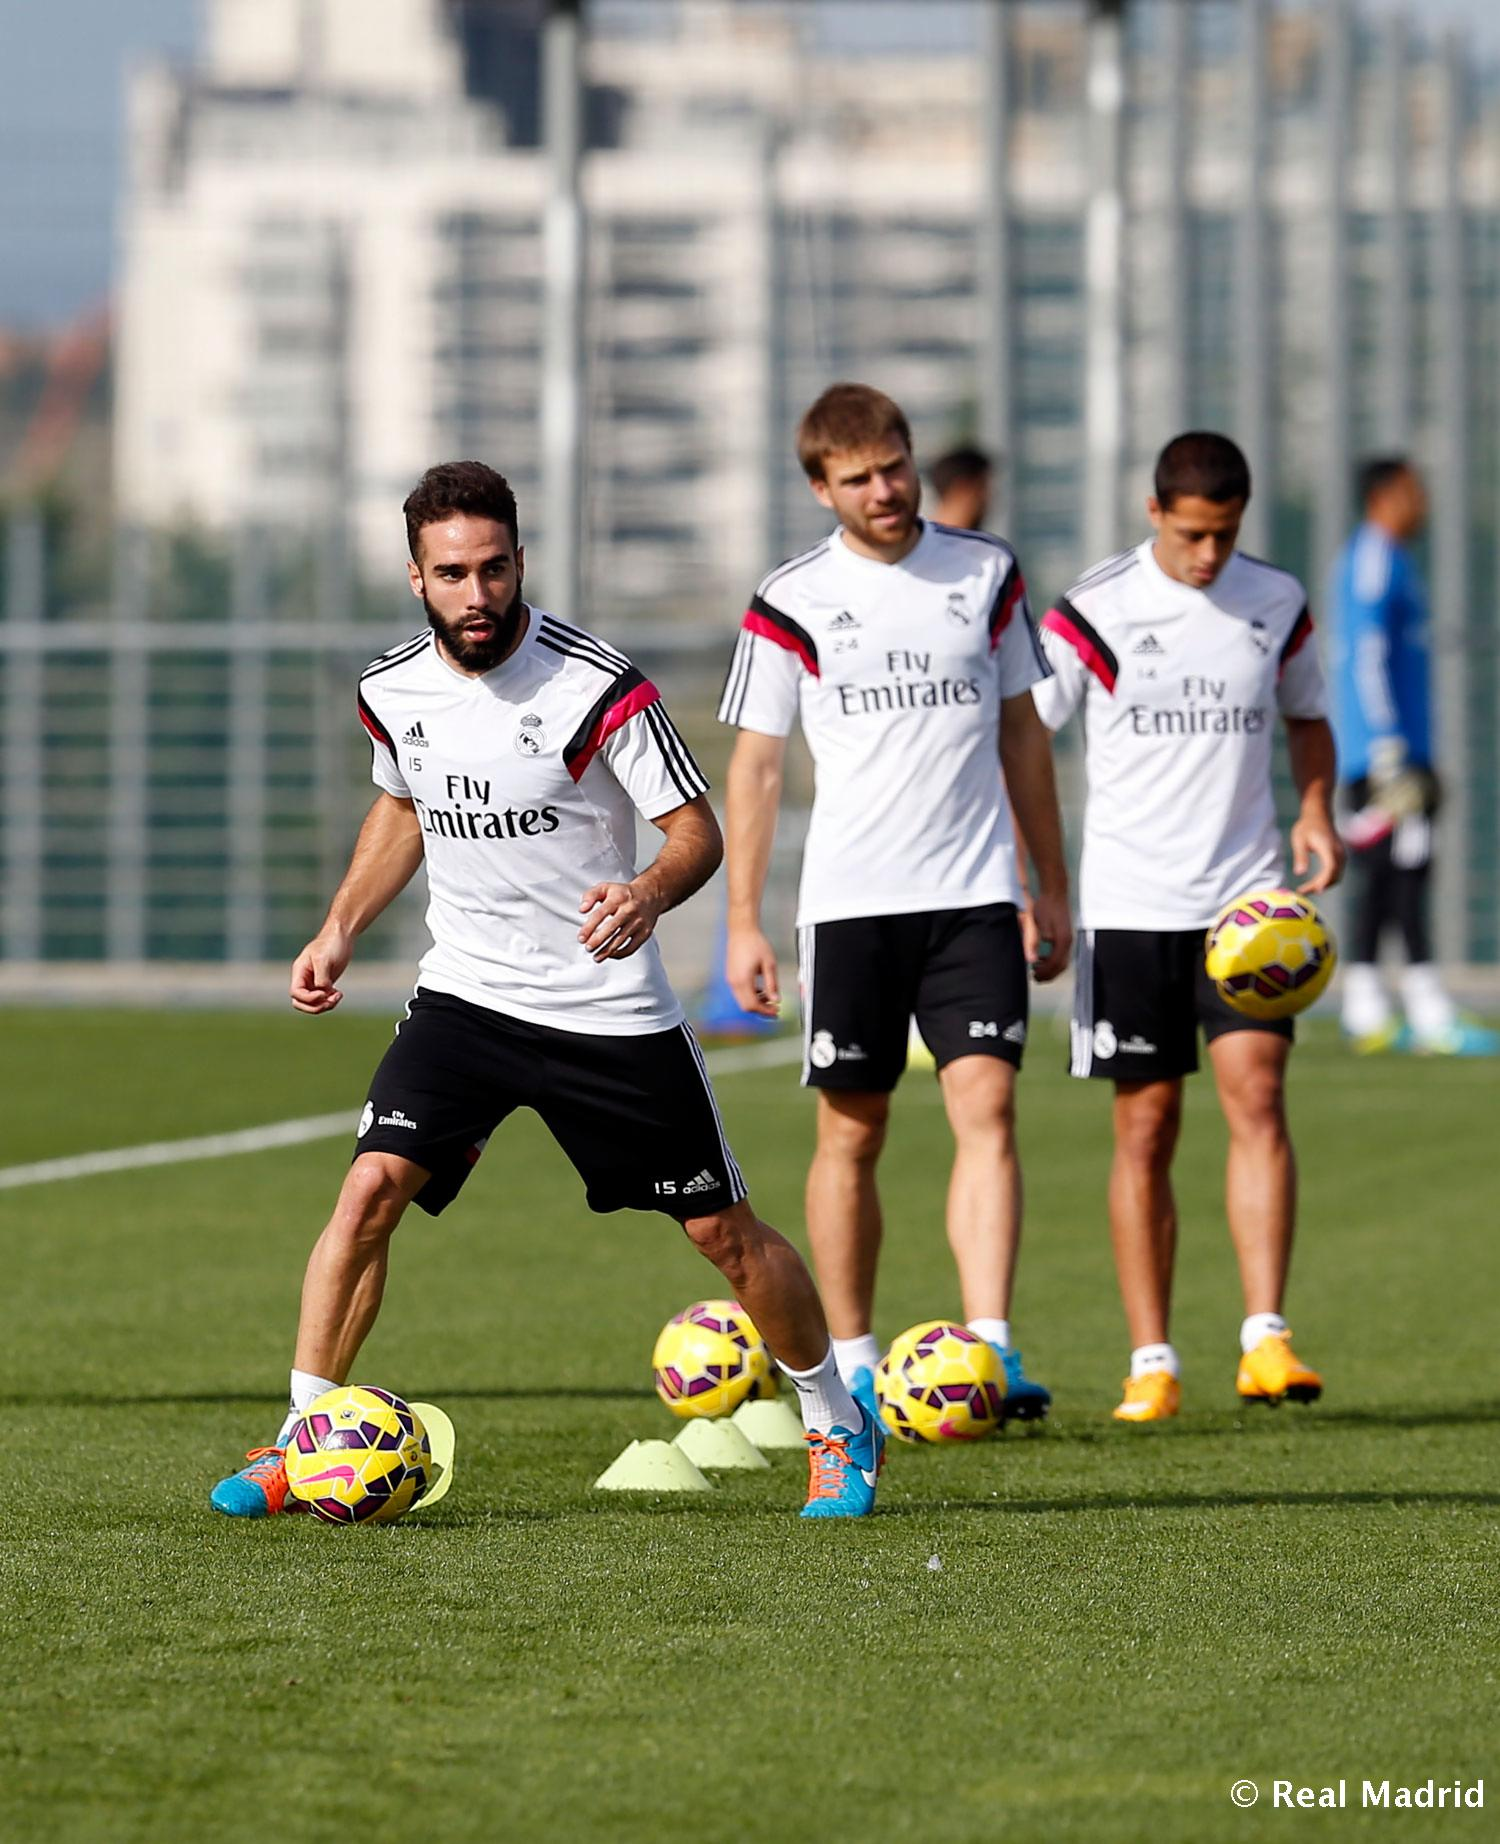 Real Madrid - Entrenamiento del Real Madrid - 23-10-2014